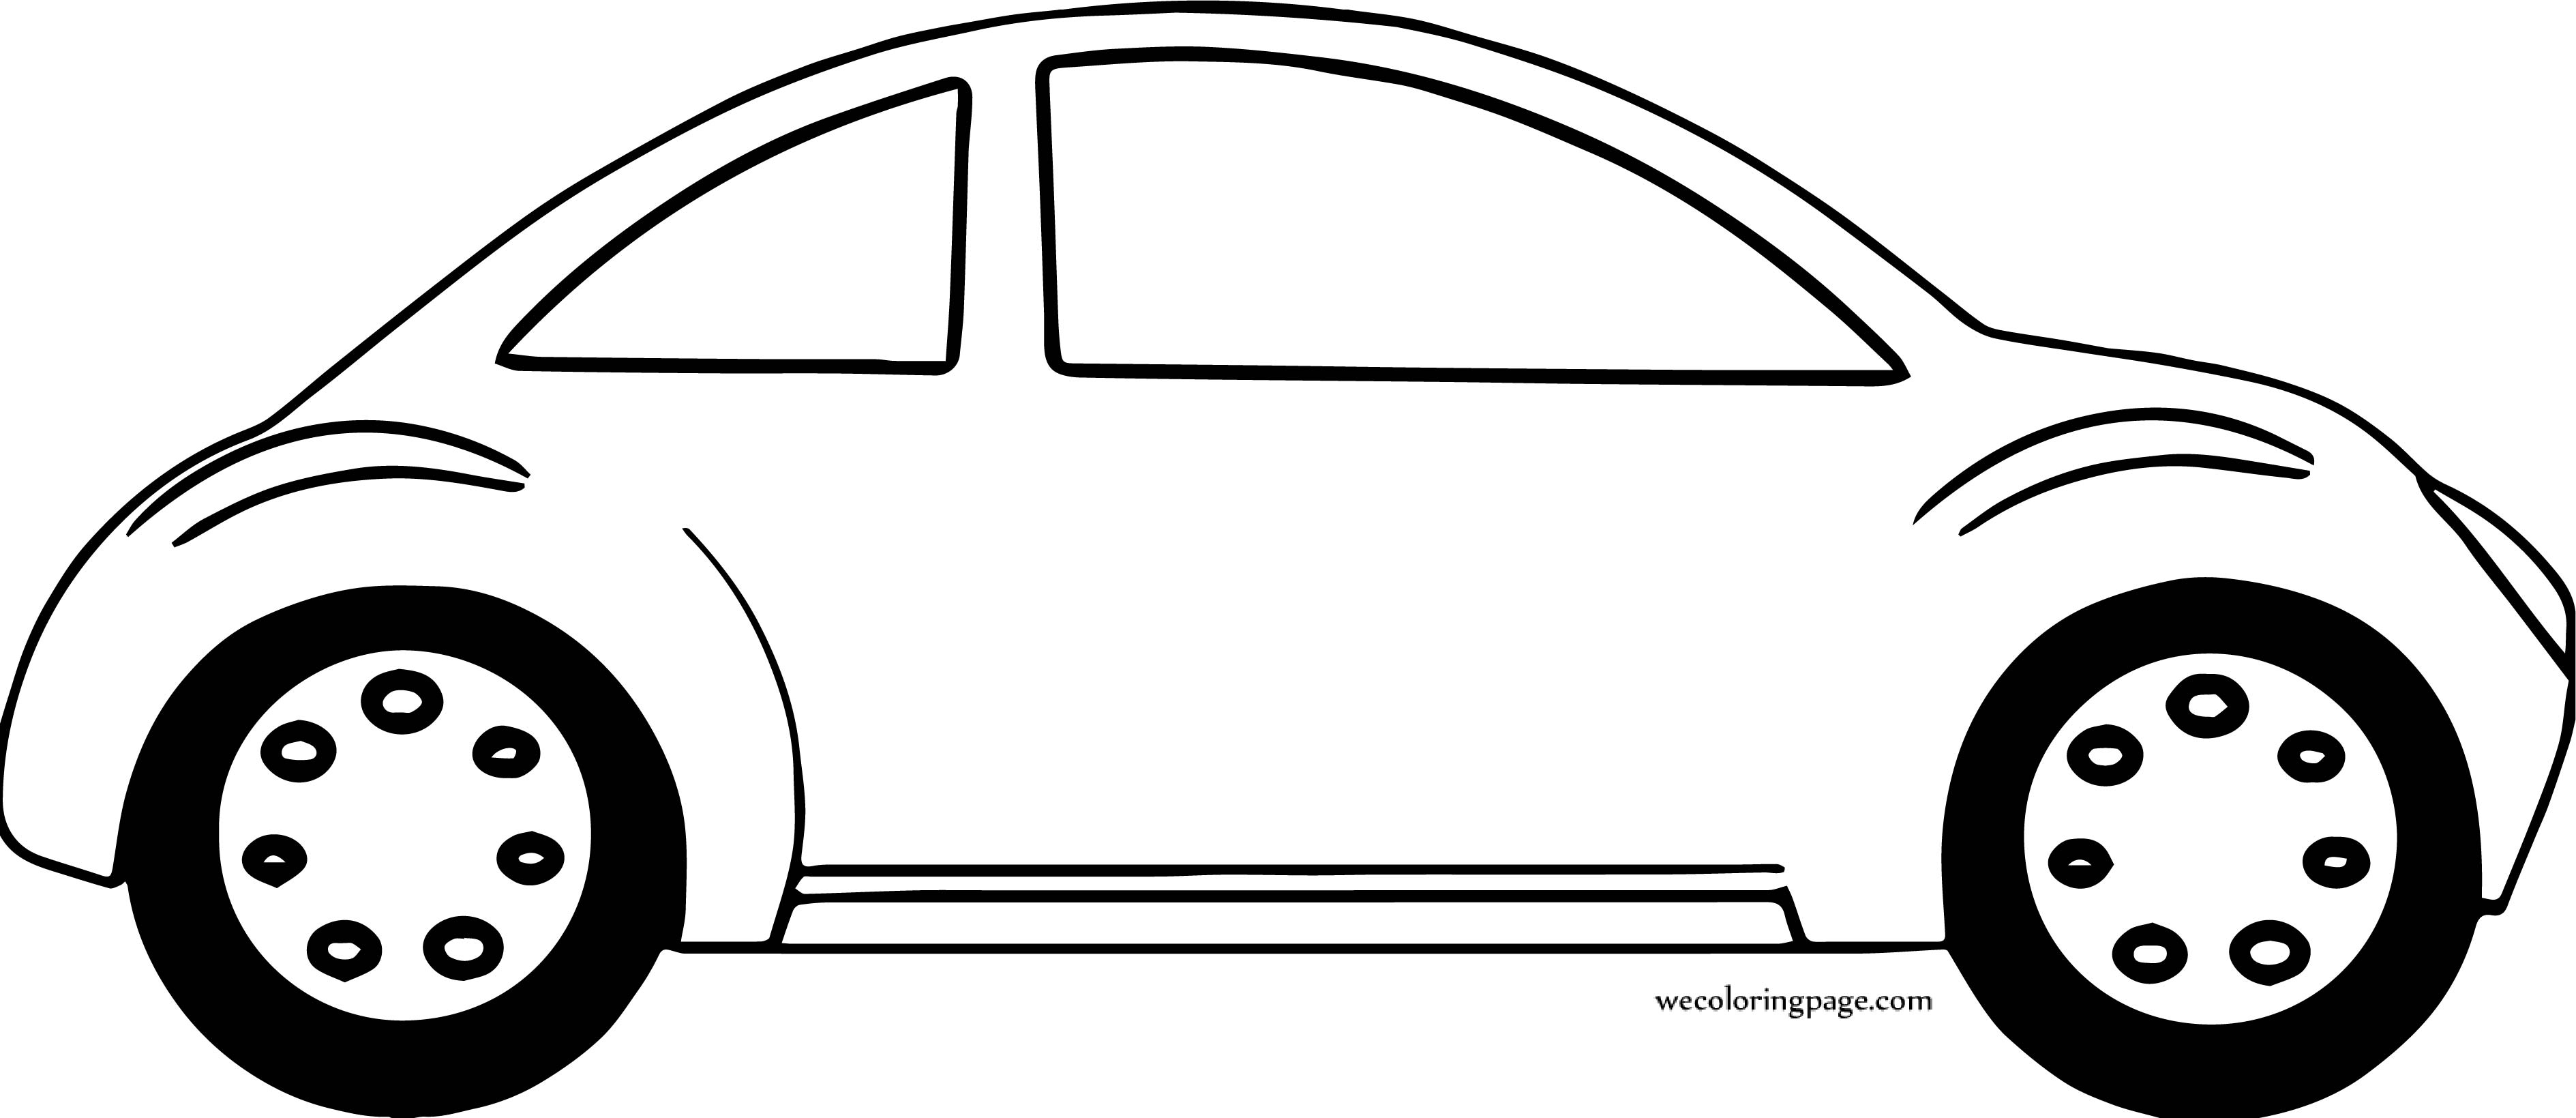 Car Wecoloringpage Coloring Page 155